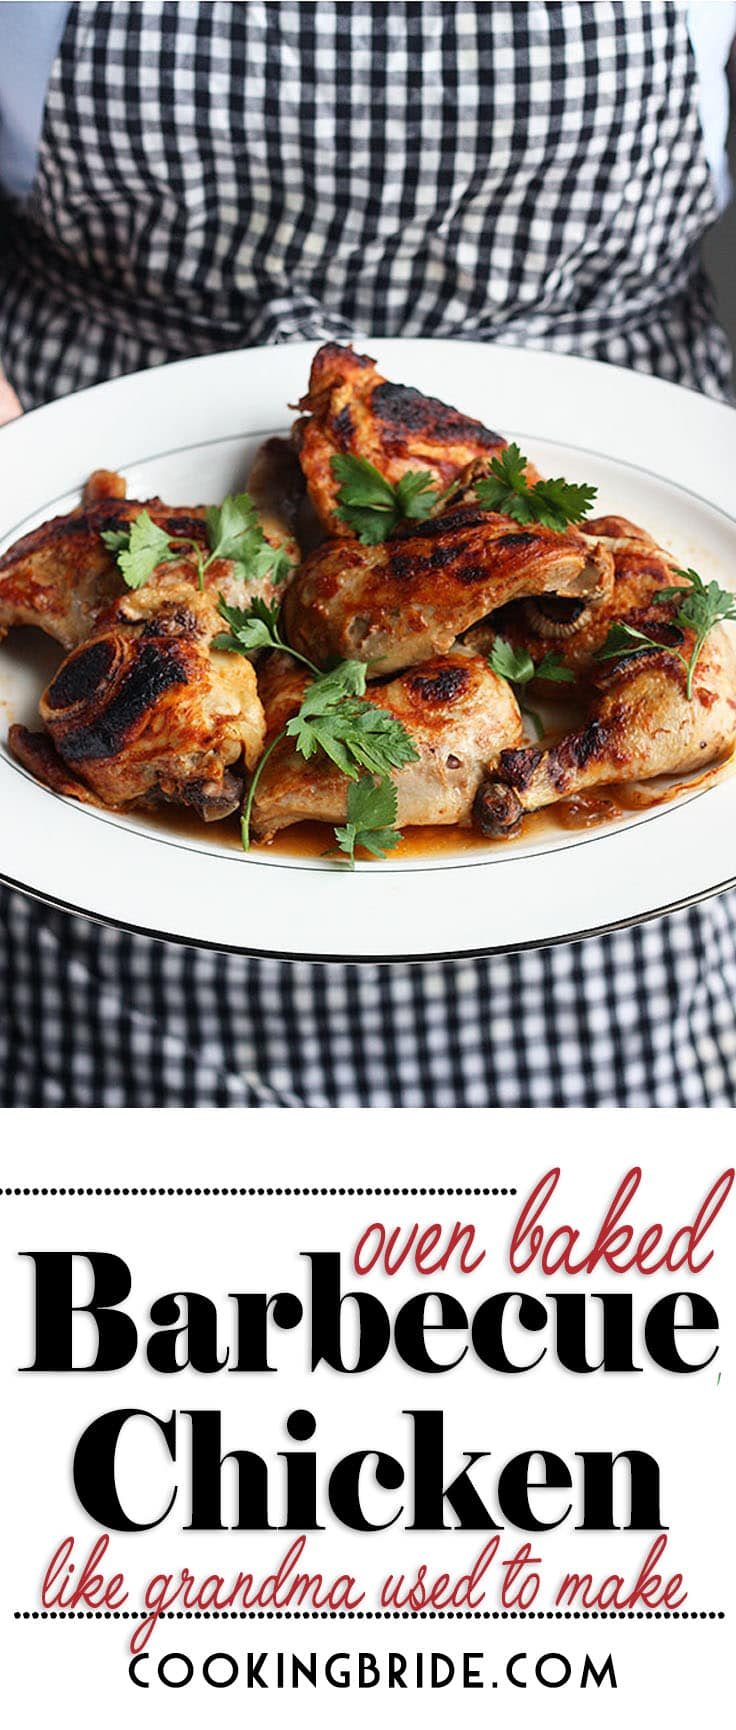 Sink your teeth into oven baked barbecue chicken like Grandma used to make. Chicken pieces are baked in a homemade sauce and seasoned with fresh onion slices for added flavor.